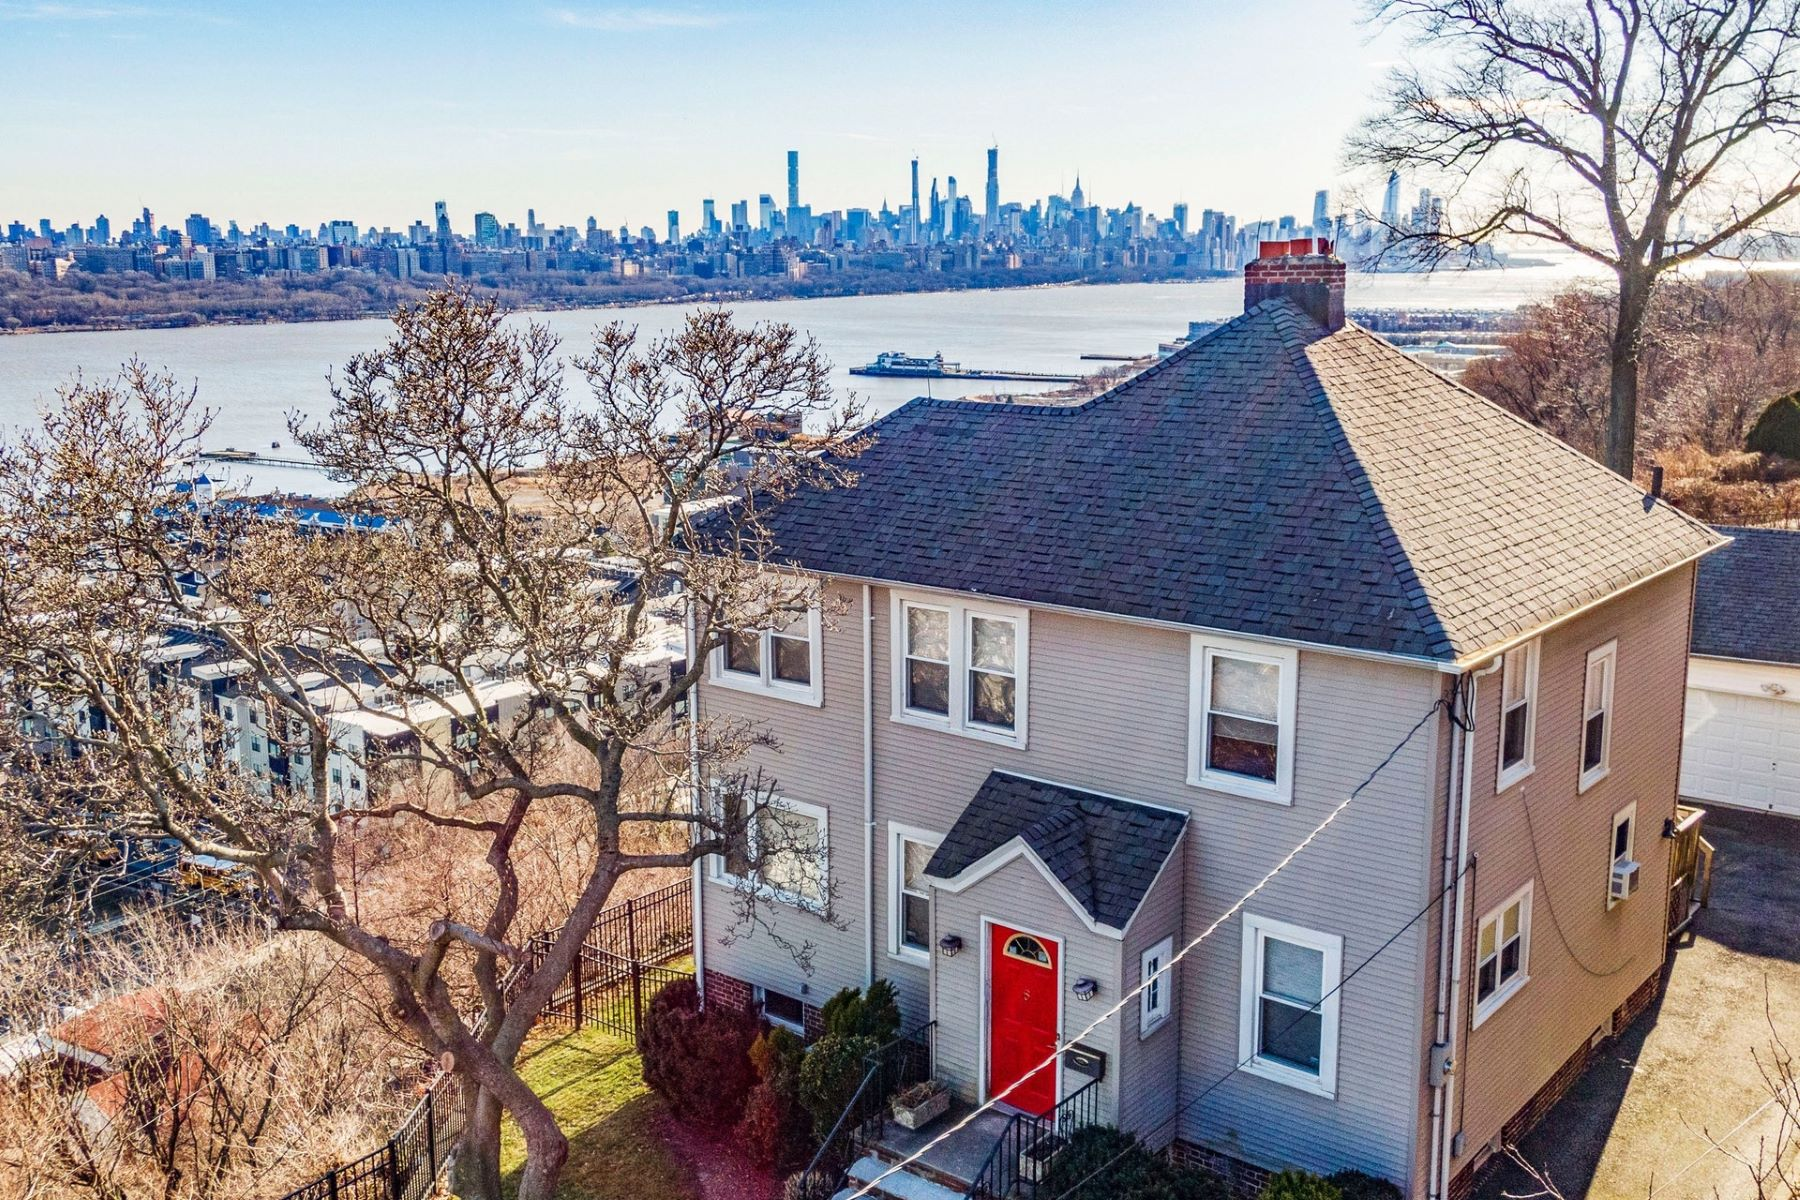 Земля для того Продажа на Location! Location! Location! 6 Columbia Avenue, Cliffside Park, Нью-Джерси 07010 Соединенные Штаты